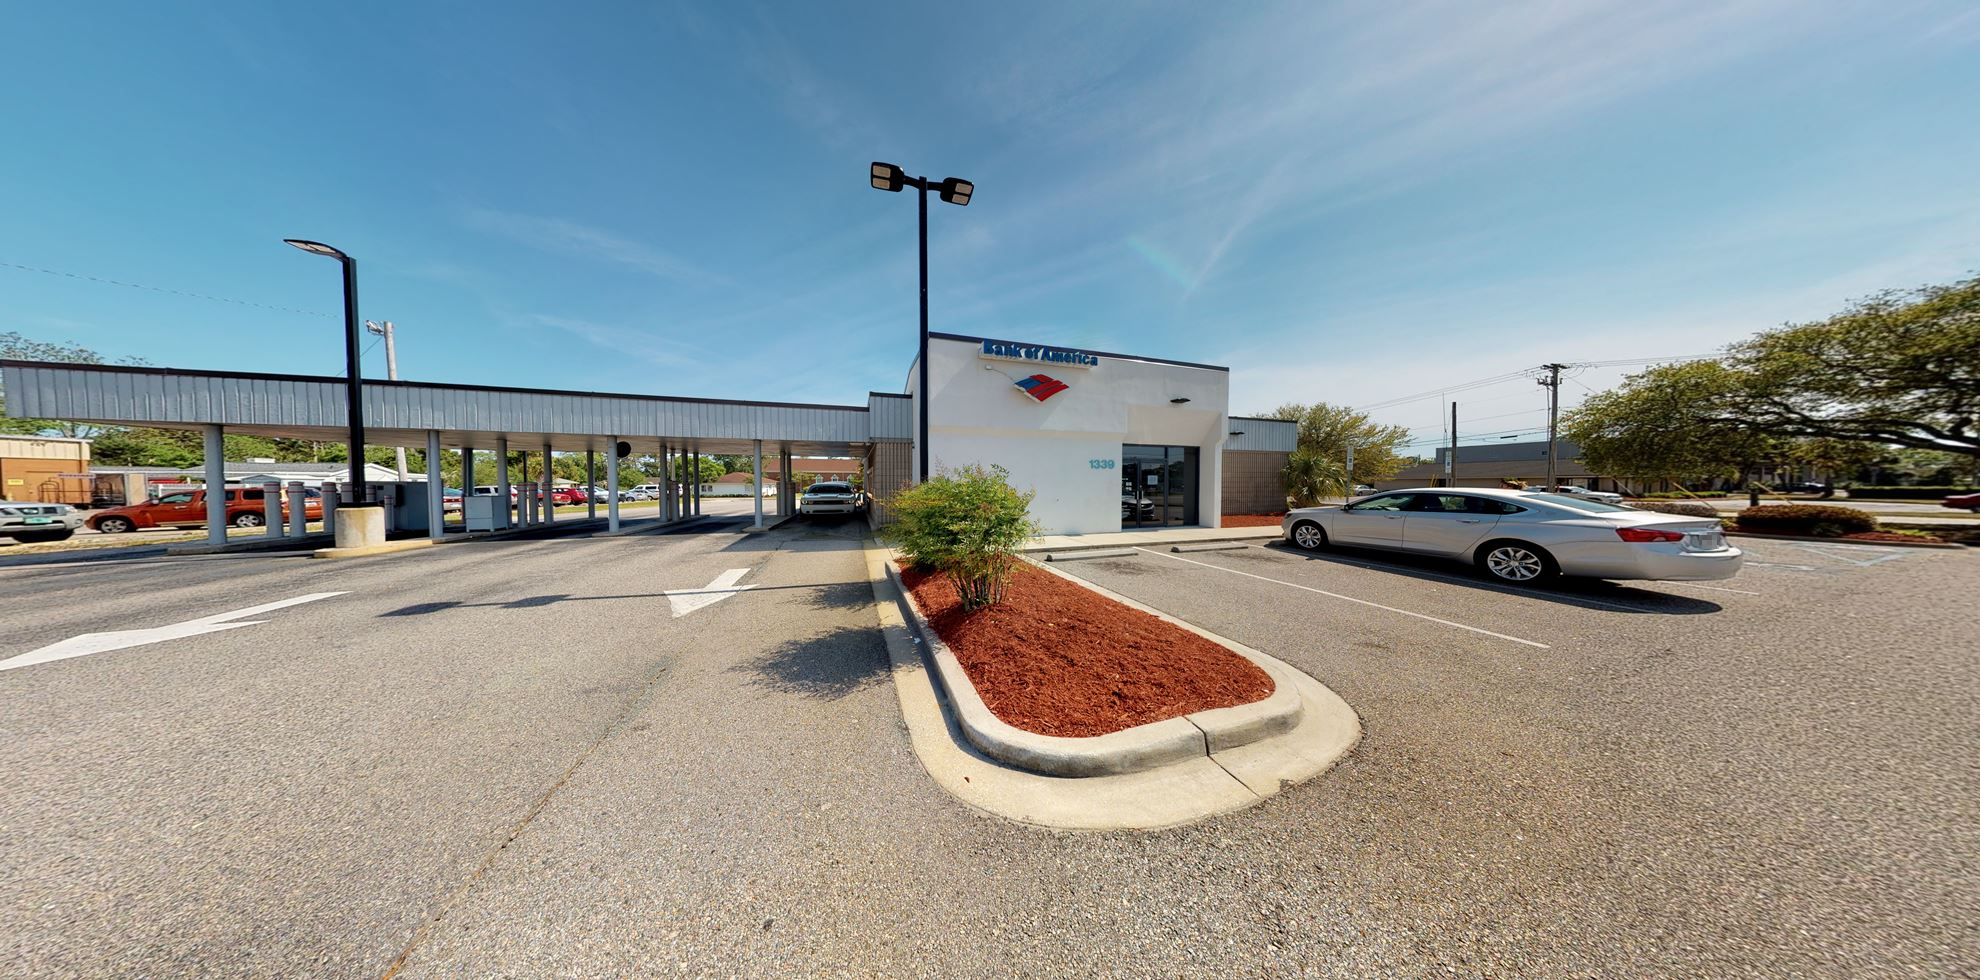 Bank of America financial center with drive-thru ATM and teller | 1339 Highway 17 S, North Myrtle Beach, SC 29582